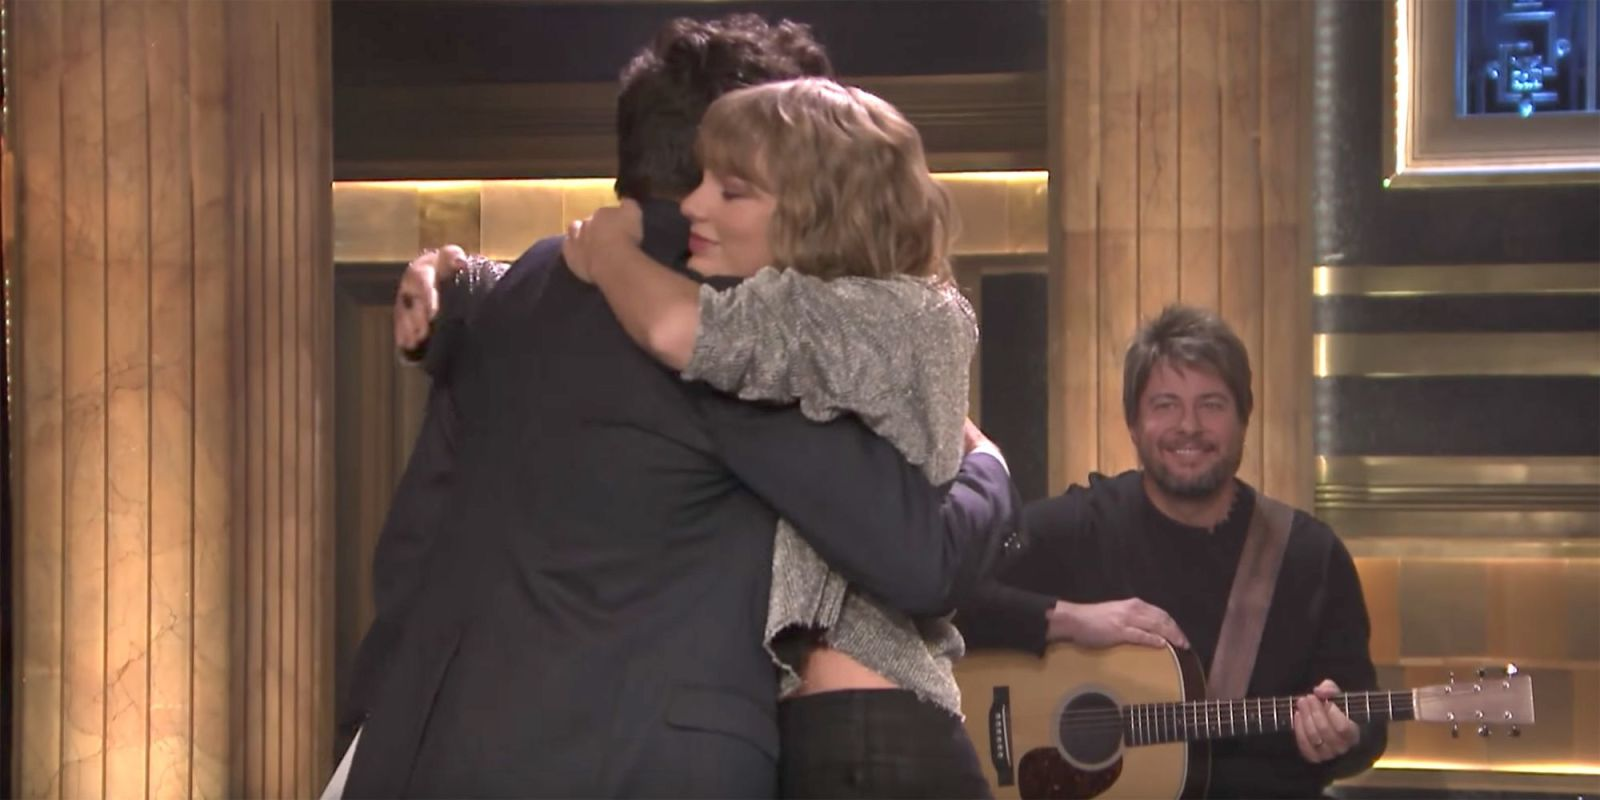 Taylor Swift's Surprise Performance of 'New Year's Day' for Jimmy Fallon Has a Touching Backstory